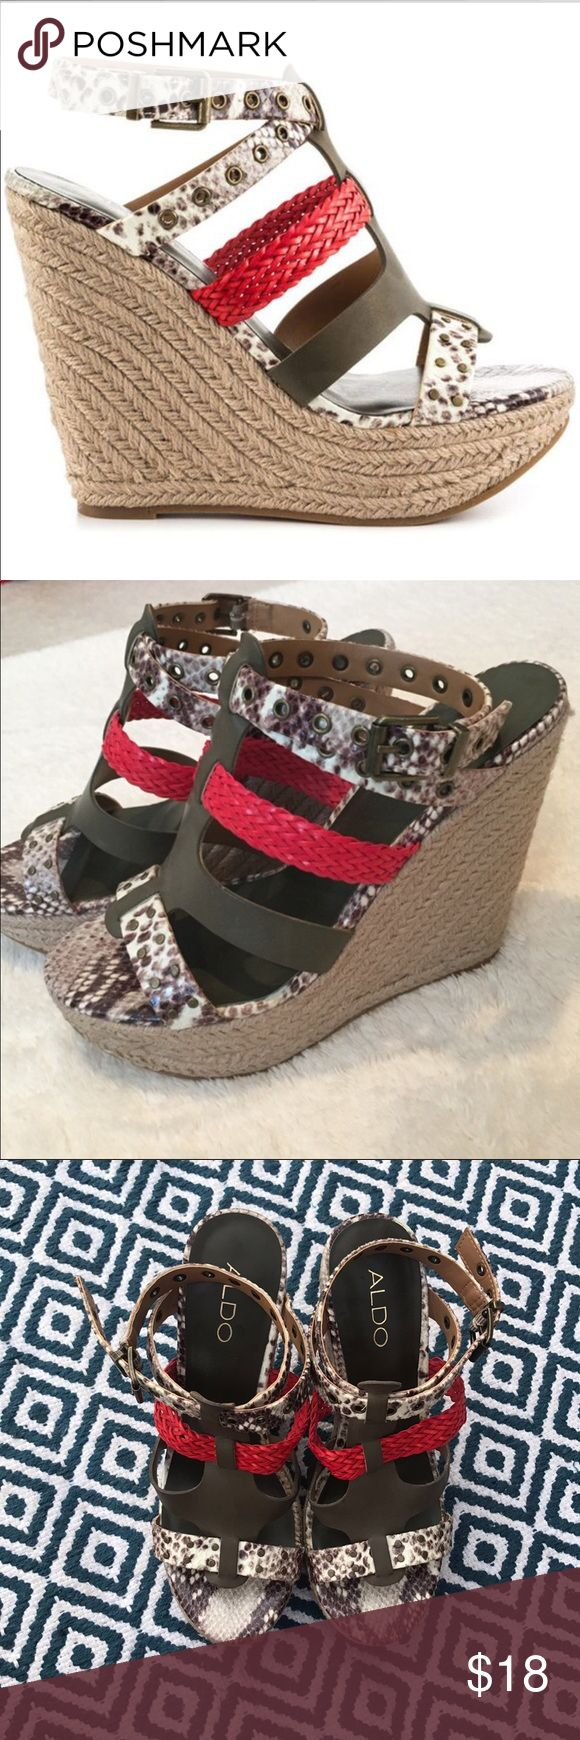 Aldo 🌹Snake Print/Multi Color Wedges These give wedges a little sass with its snake print , army green , and a splash of red Combination. They are in Great Condition and Very comfortable like all wedges 😘 Aldo Shoes Wedges